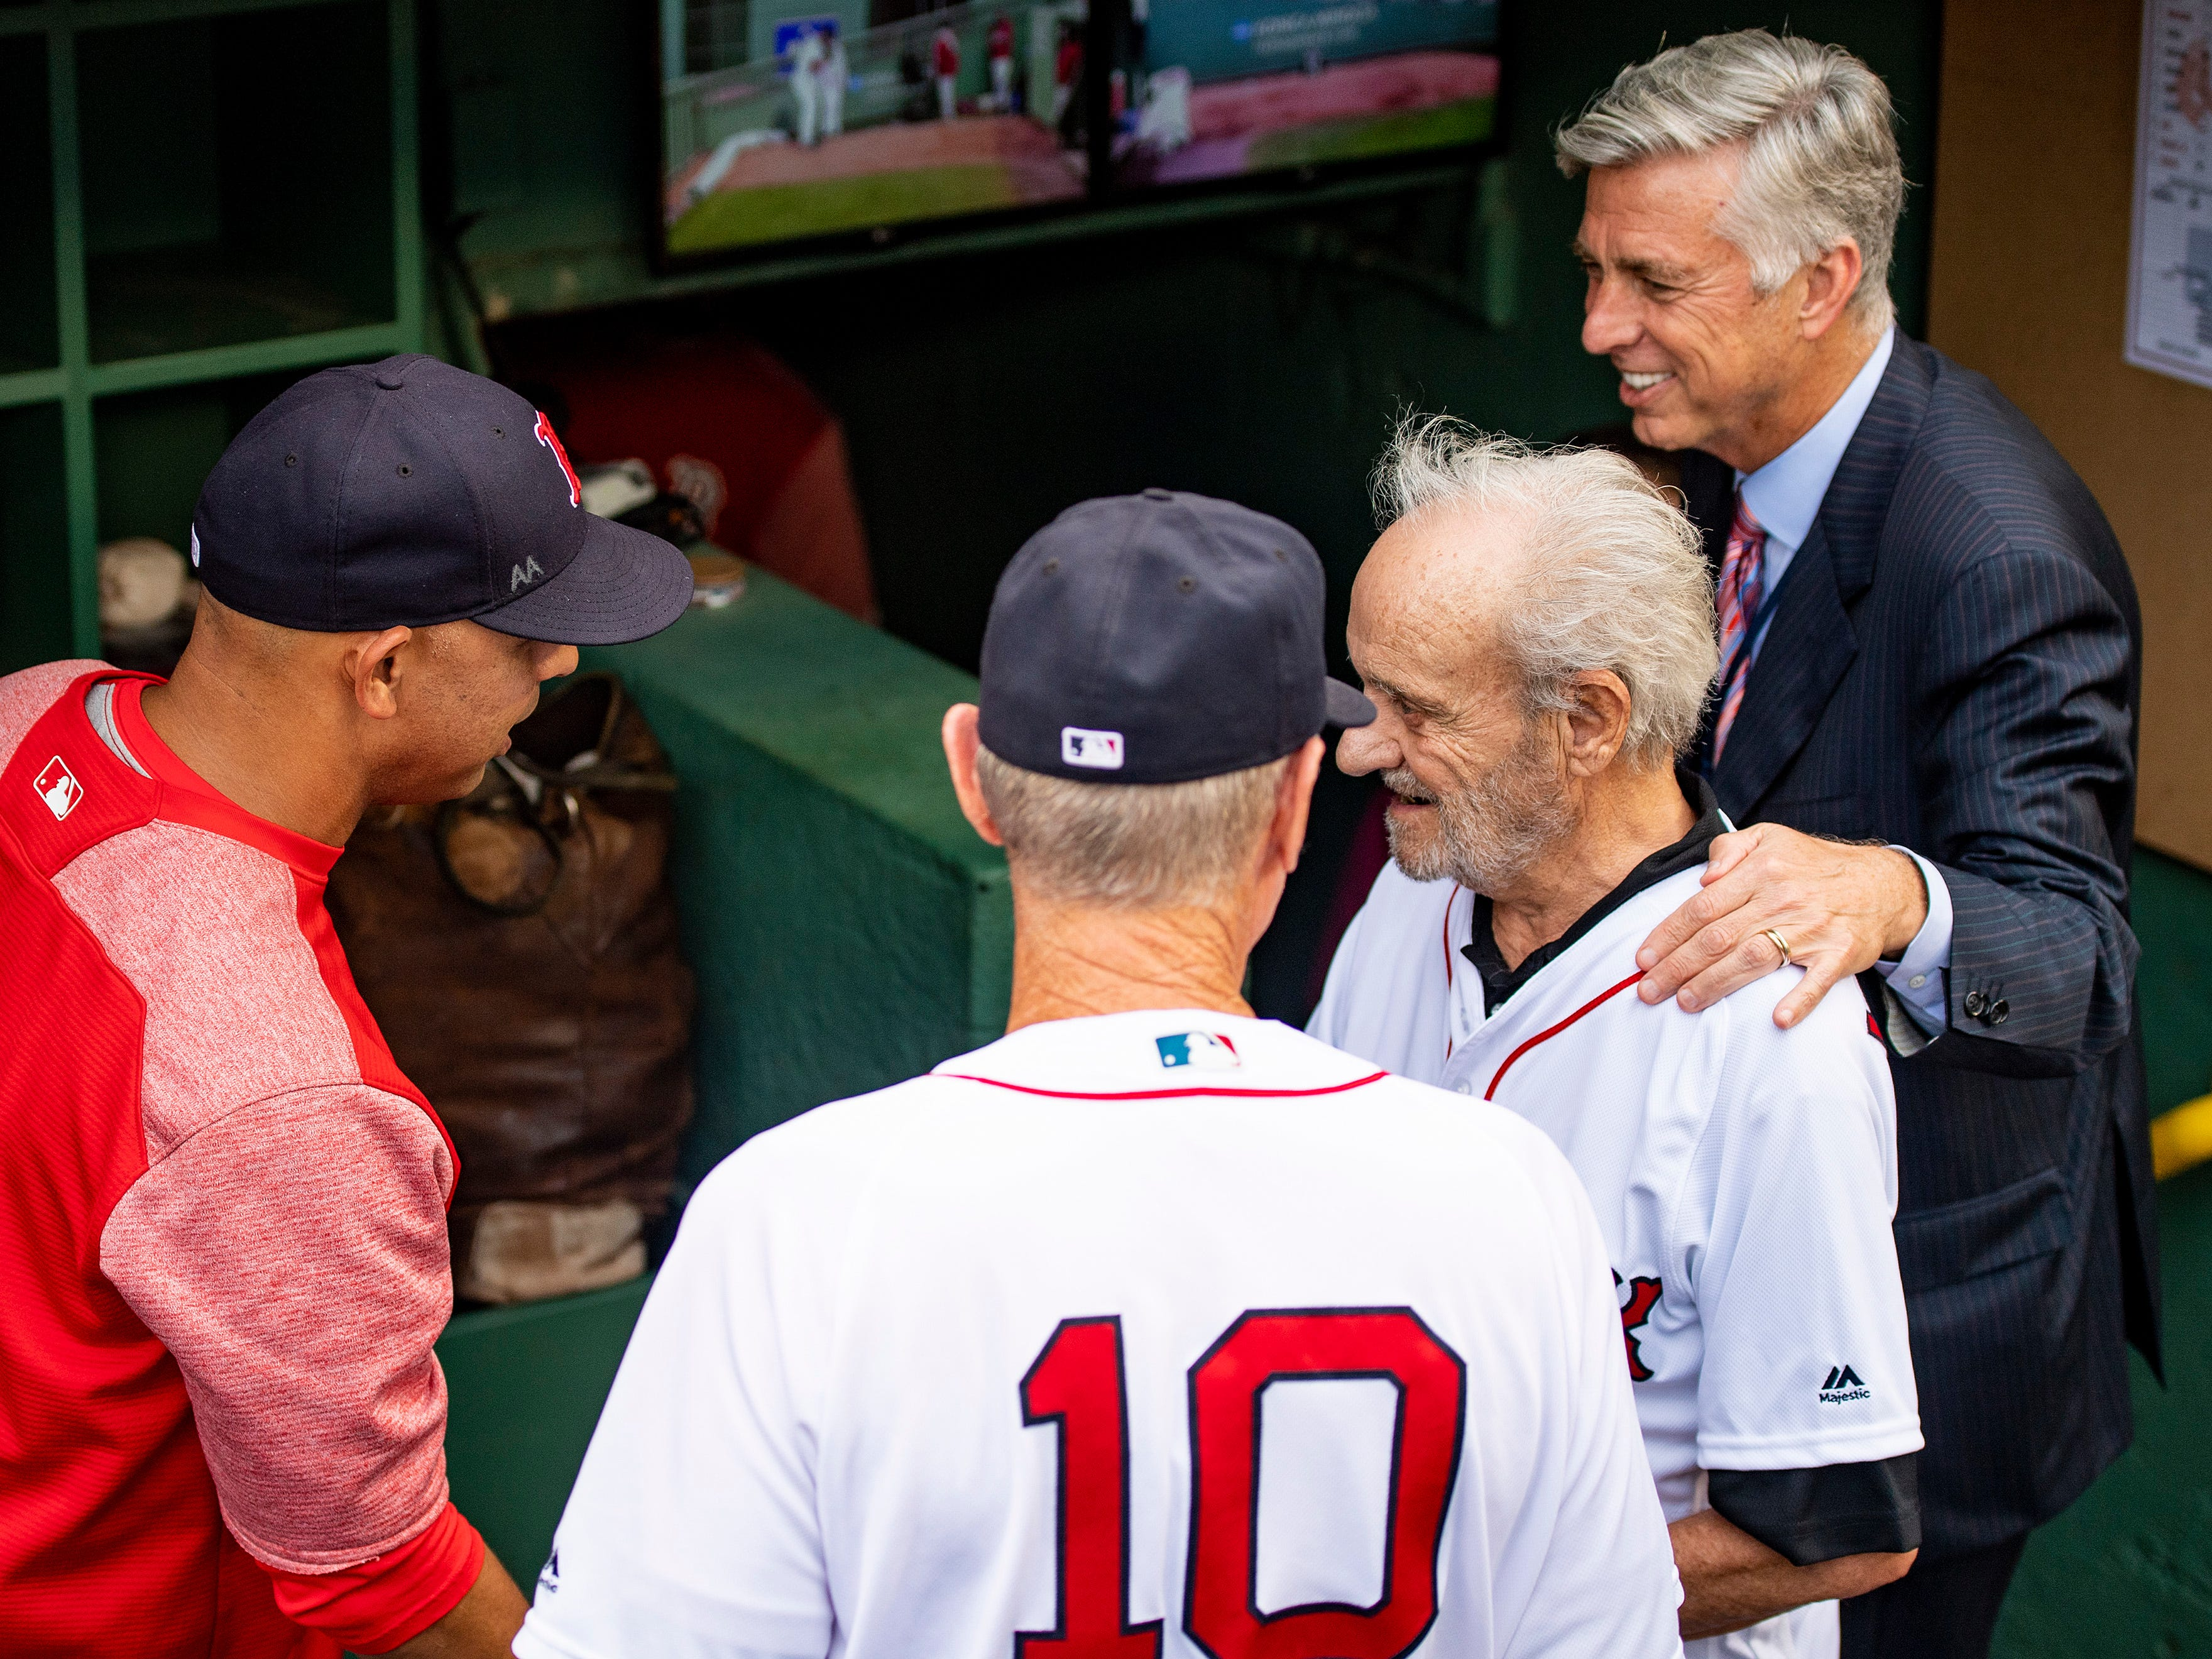 BOSTON, MA - AUGUST 2: Major League Baseball Executive Roland Hemond  is greeted by Boston Red Sox President of Baseball Operations Dave Dombrowski and manager Alex Cora before throwing out the ceremonial first pitch before a game between the Boston Red Sox and the New York Yankees on August 2, 2018 at Fenway Park in Boston, Massachusetts. (Photo by Billie Weiss/Boston Red Sox/Getty Images) *** Local Caption *** Roland Hemond; Dave Dombrowski; Alex Cora